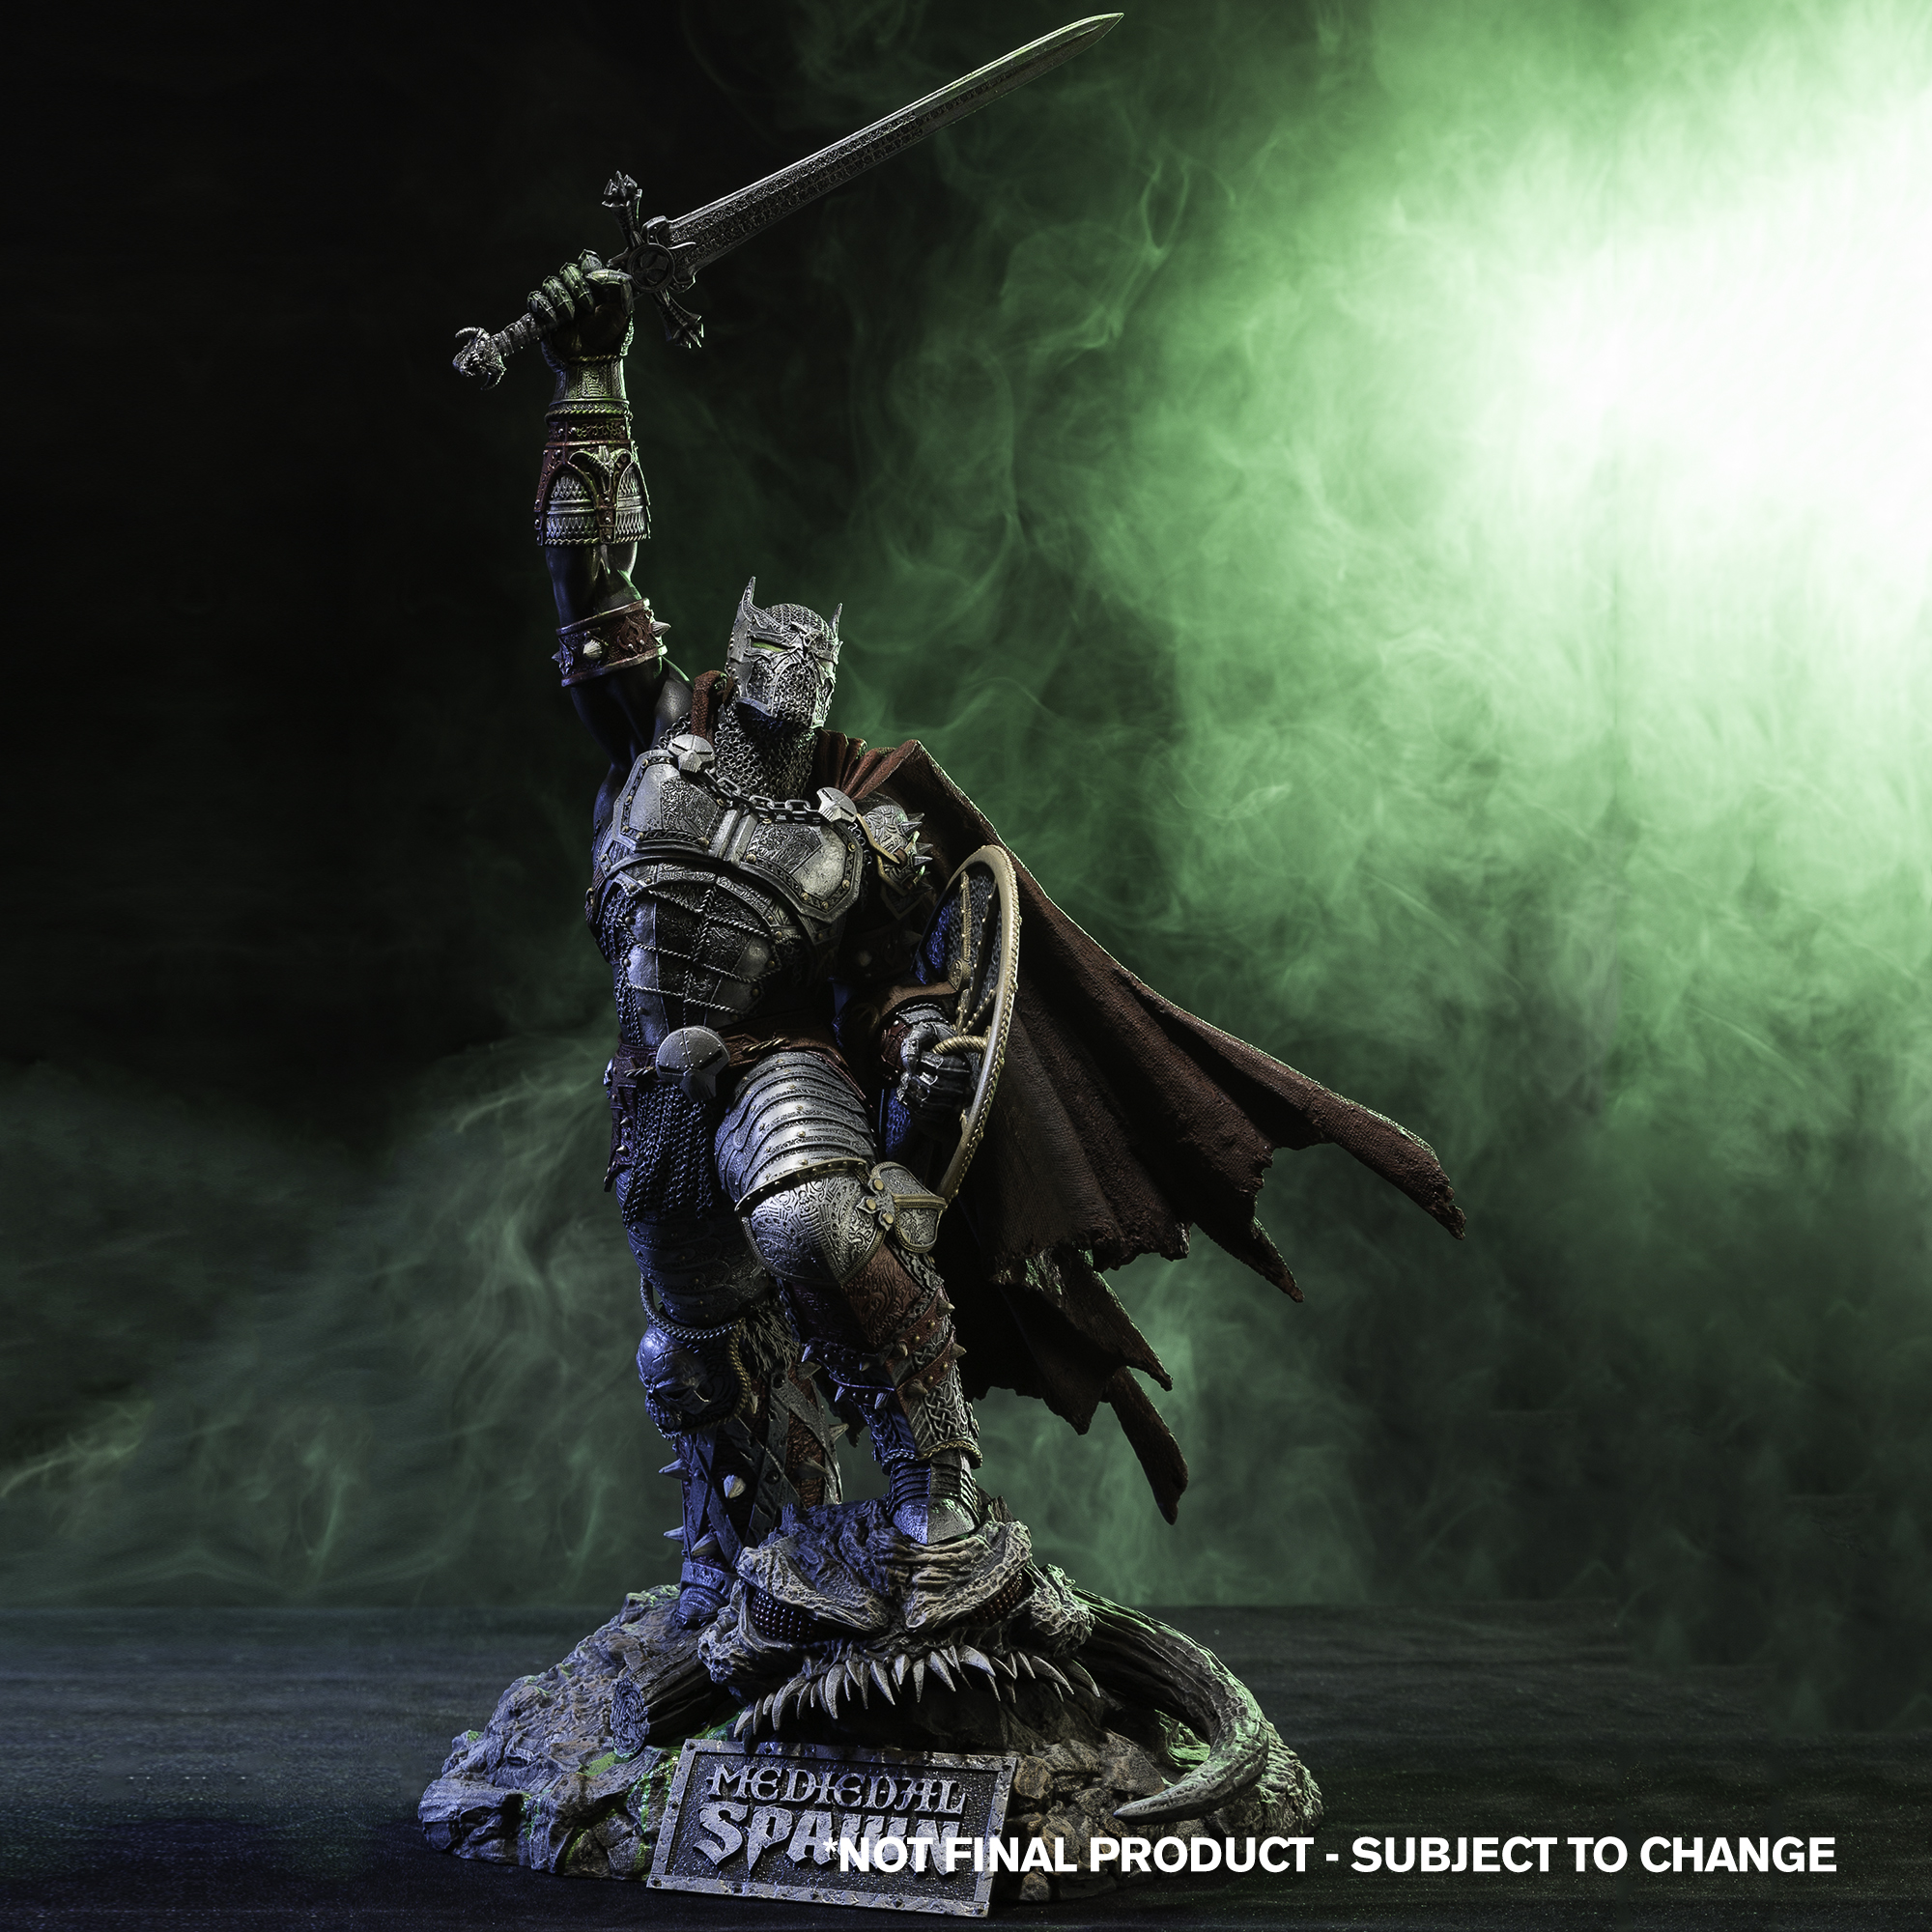 McFarlane Toys Releases Medieval Spawn Resin Statue